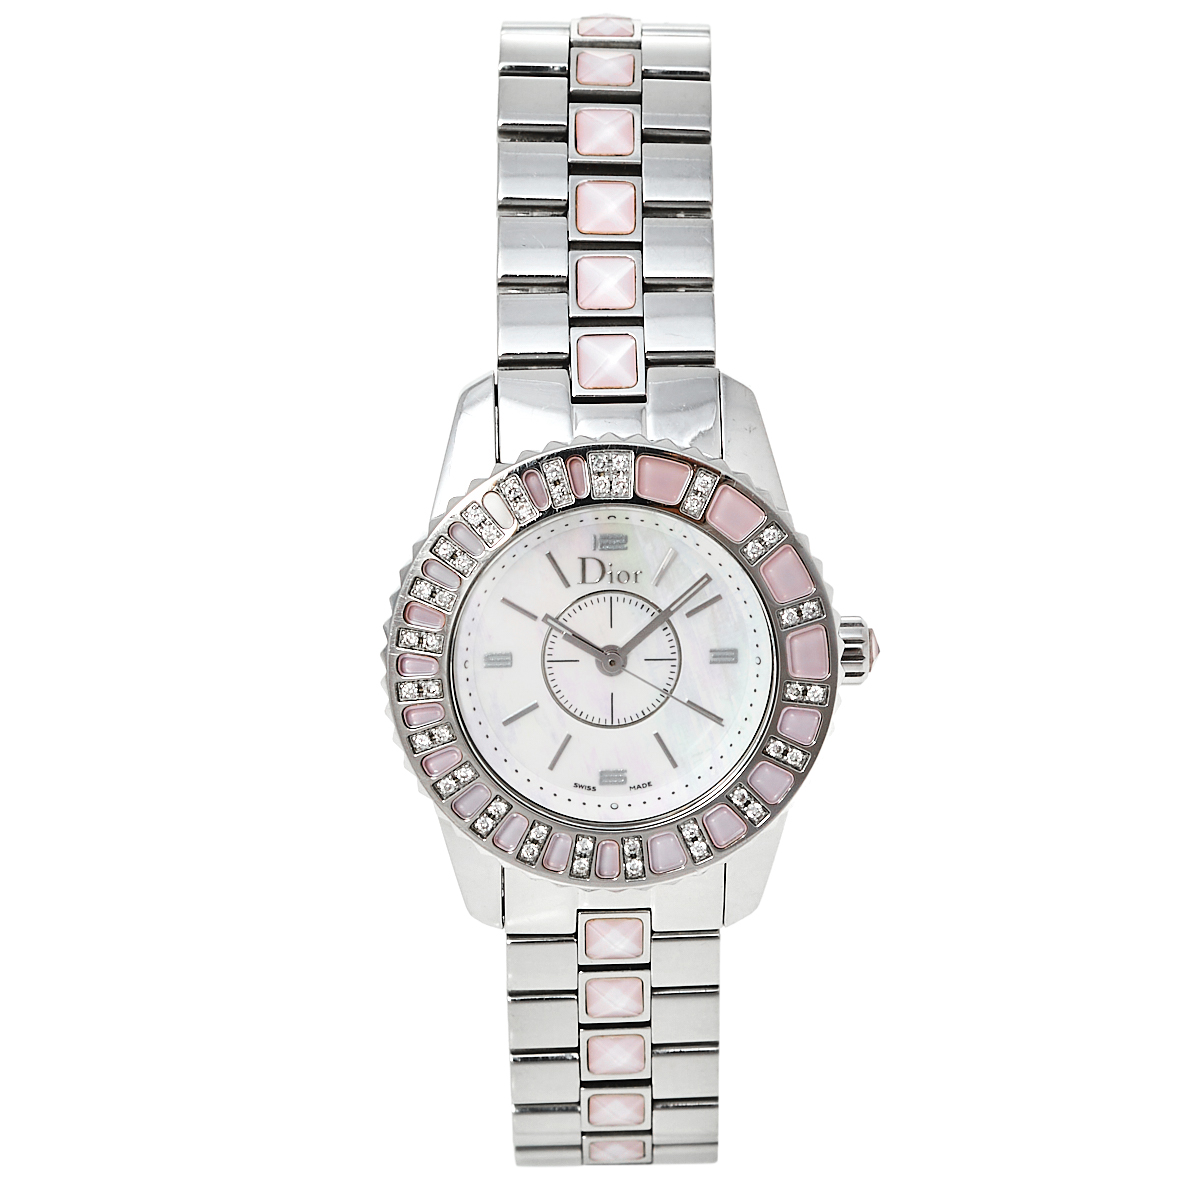 Pre-owned Dior Mother Of Pearl Stainless Steel Diamonds Christal Cd112111m001 Women's Wristwatch 28 Mm In White